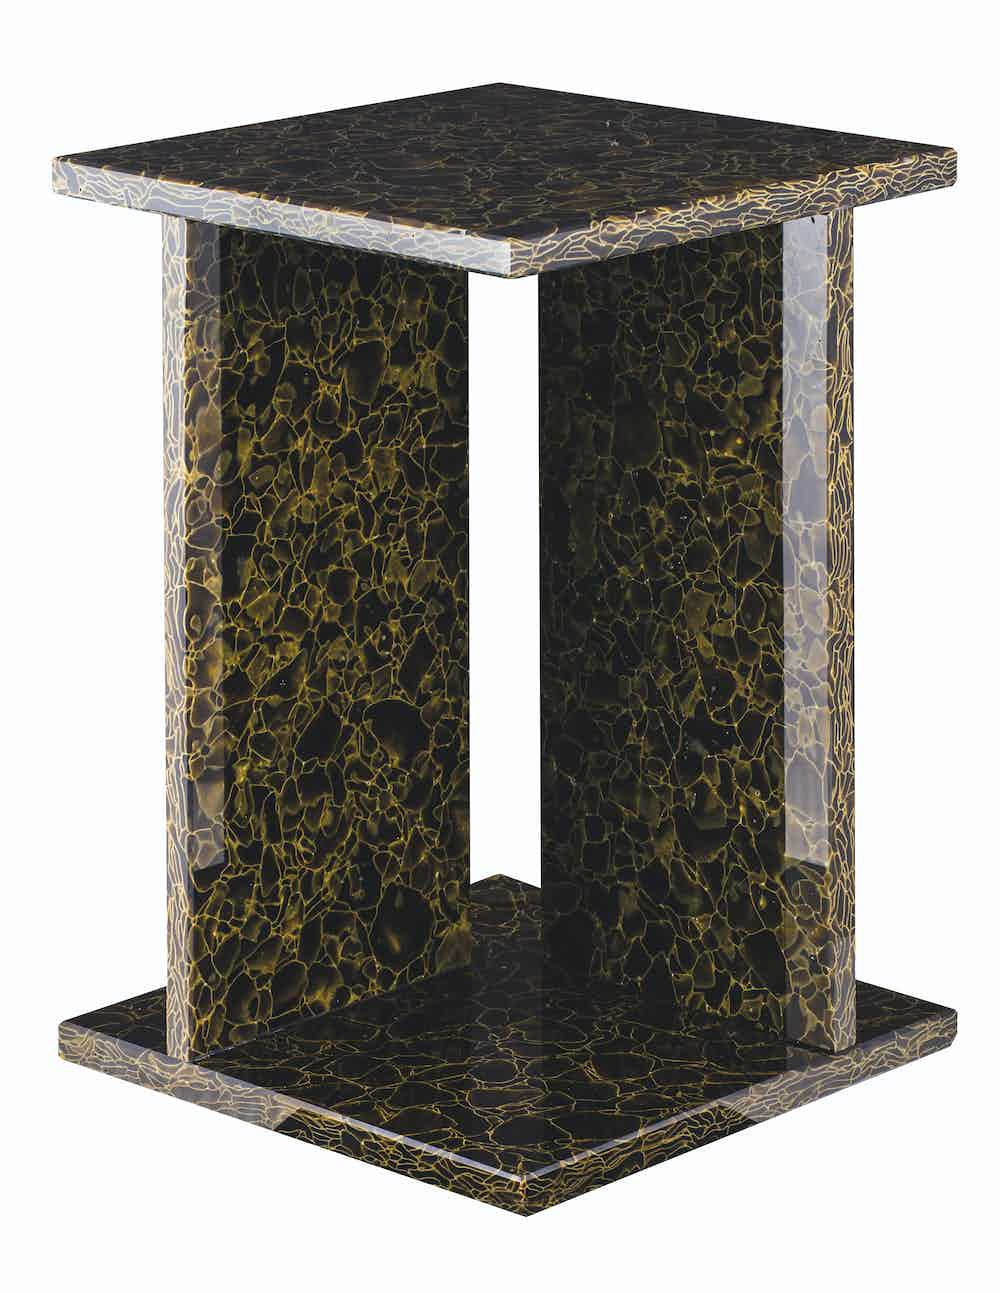 Pulpo font table brown square high haute living